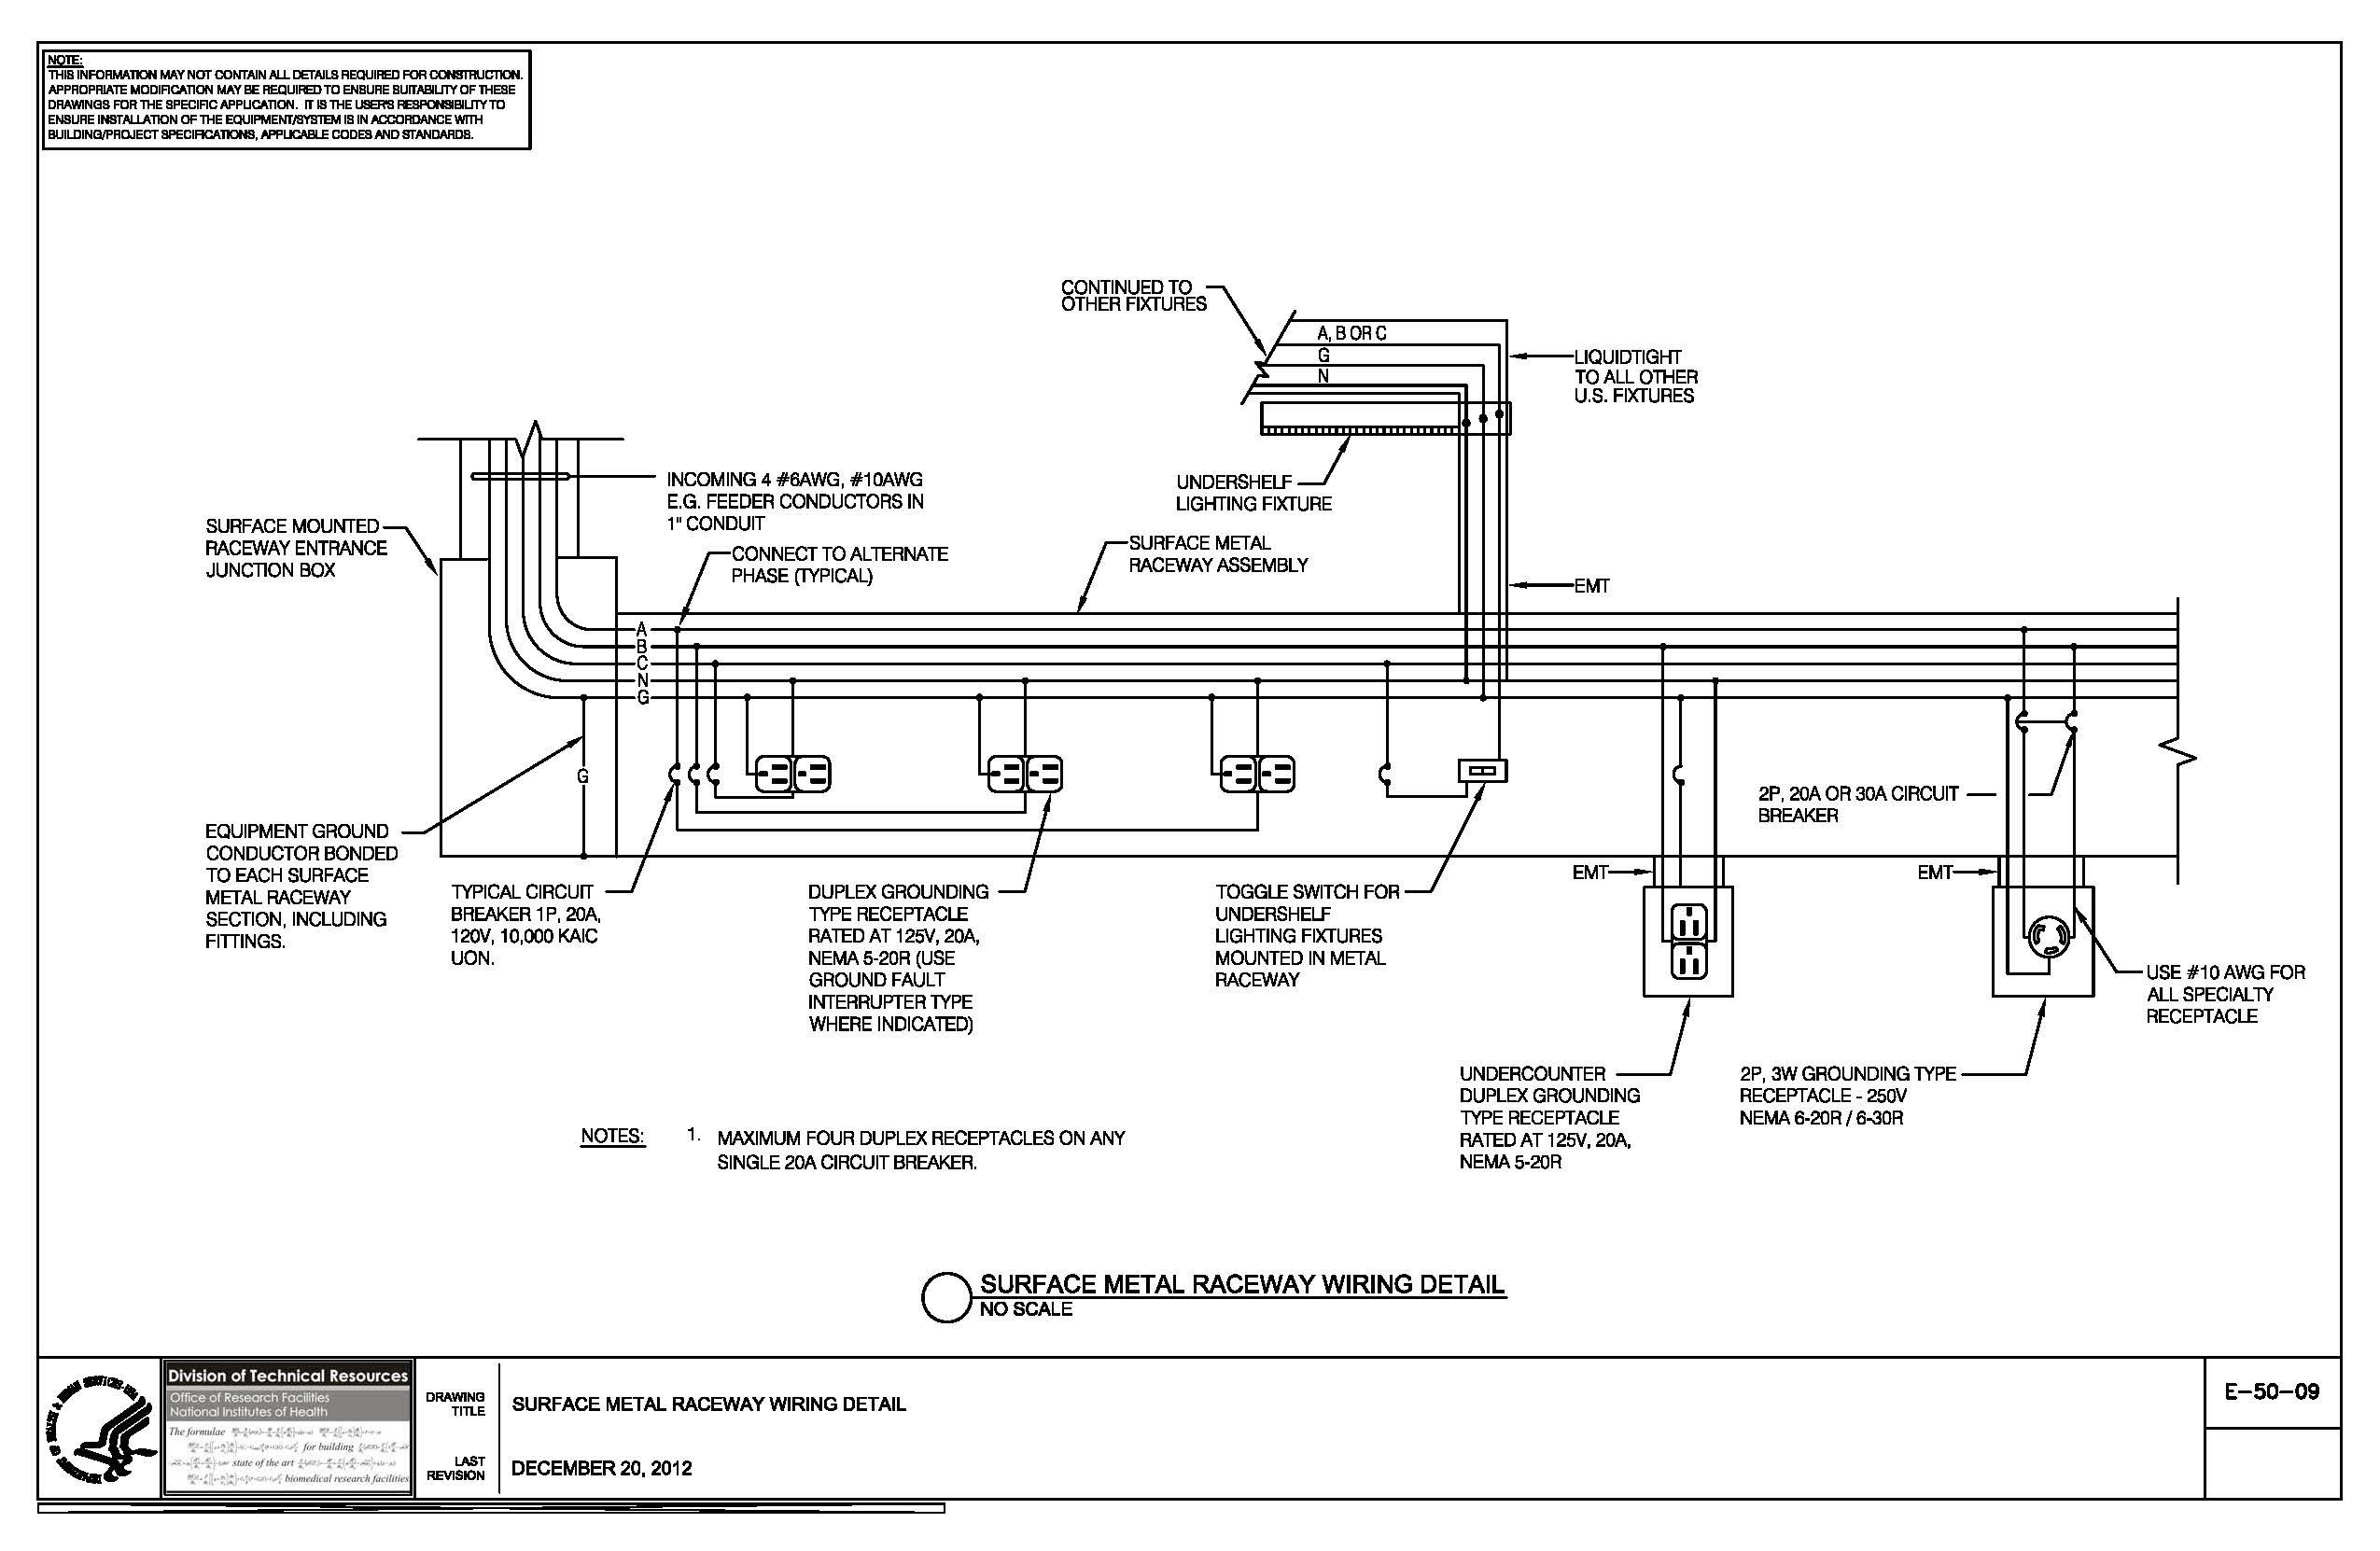 Swimming Pool Electrical Wiring Diagram - Of E 50 09 Surface Metal Raceway Wiring Detail Nih Standard Cad Details From Above Ground New Ground Pool Electrical Wiring Diagram 12s